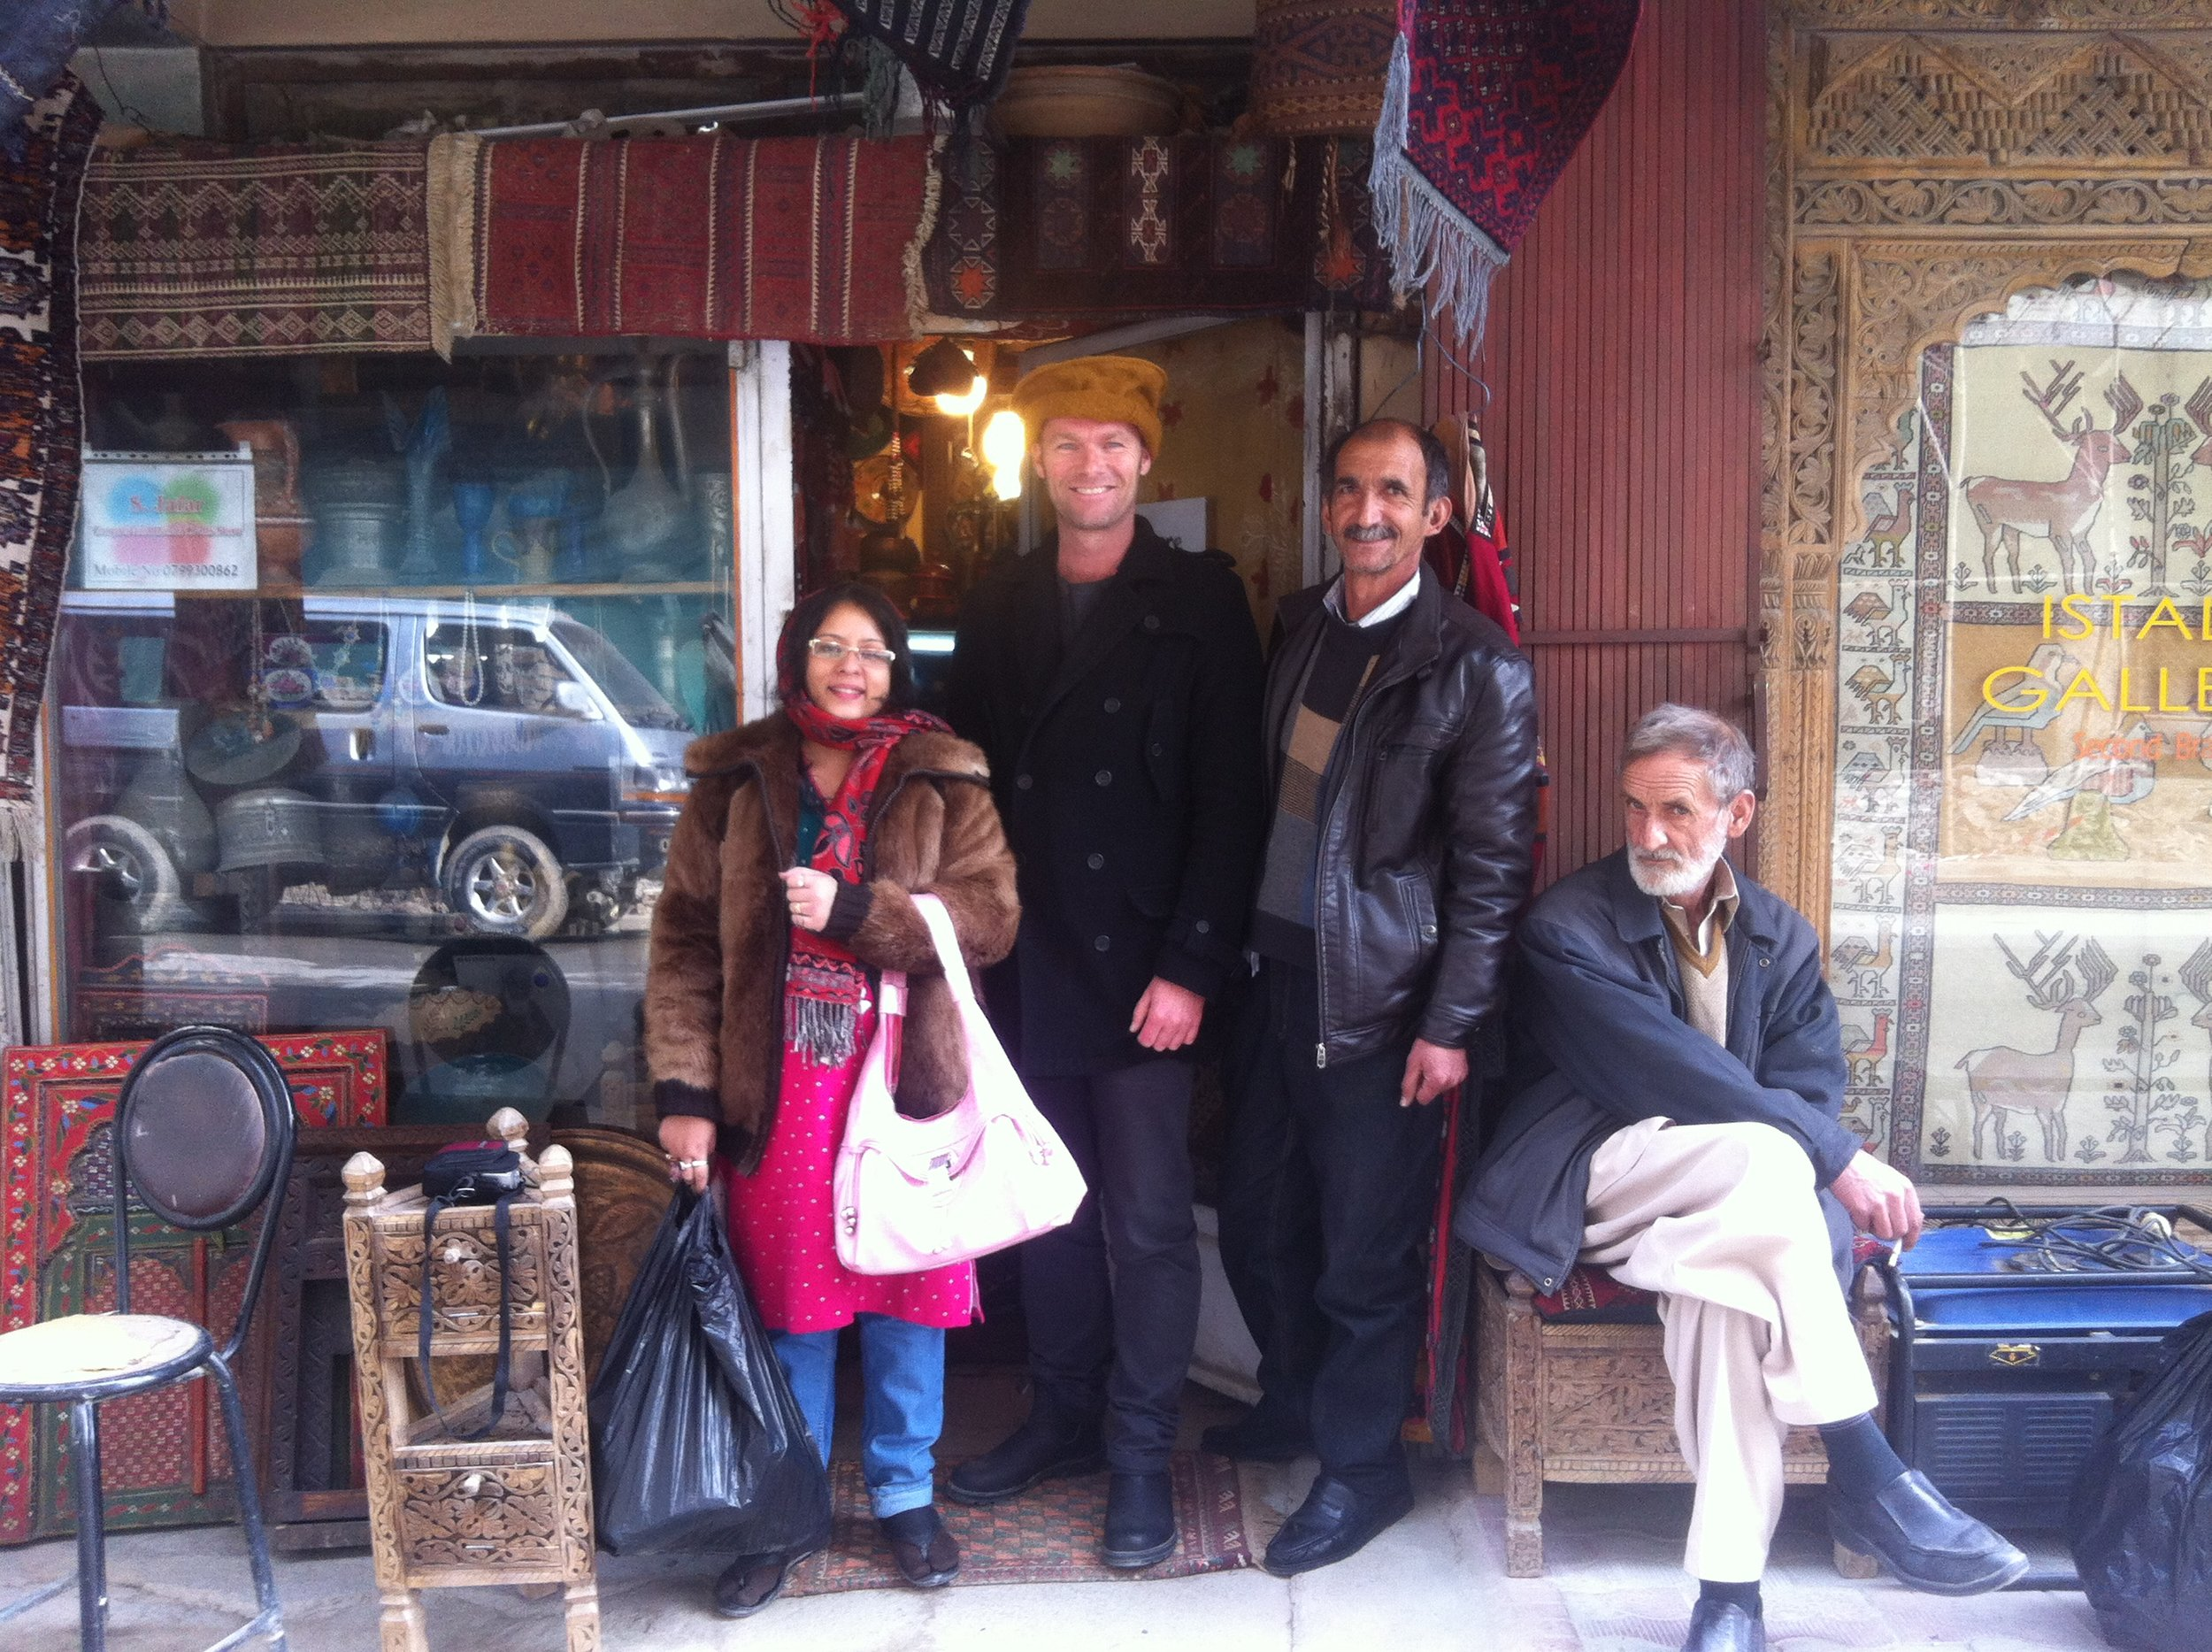 Me with two ANIM colleagues and an elderly merchant on Chicken Street in Kabul, 2015.